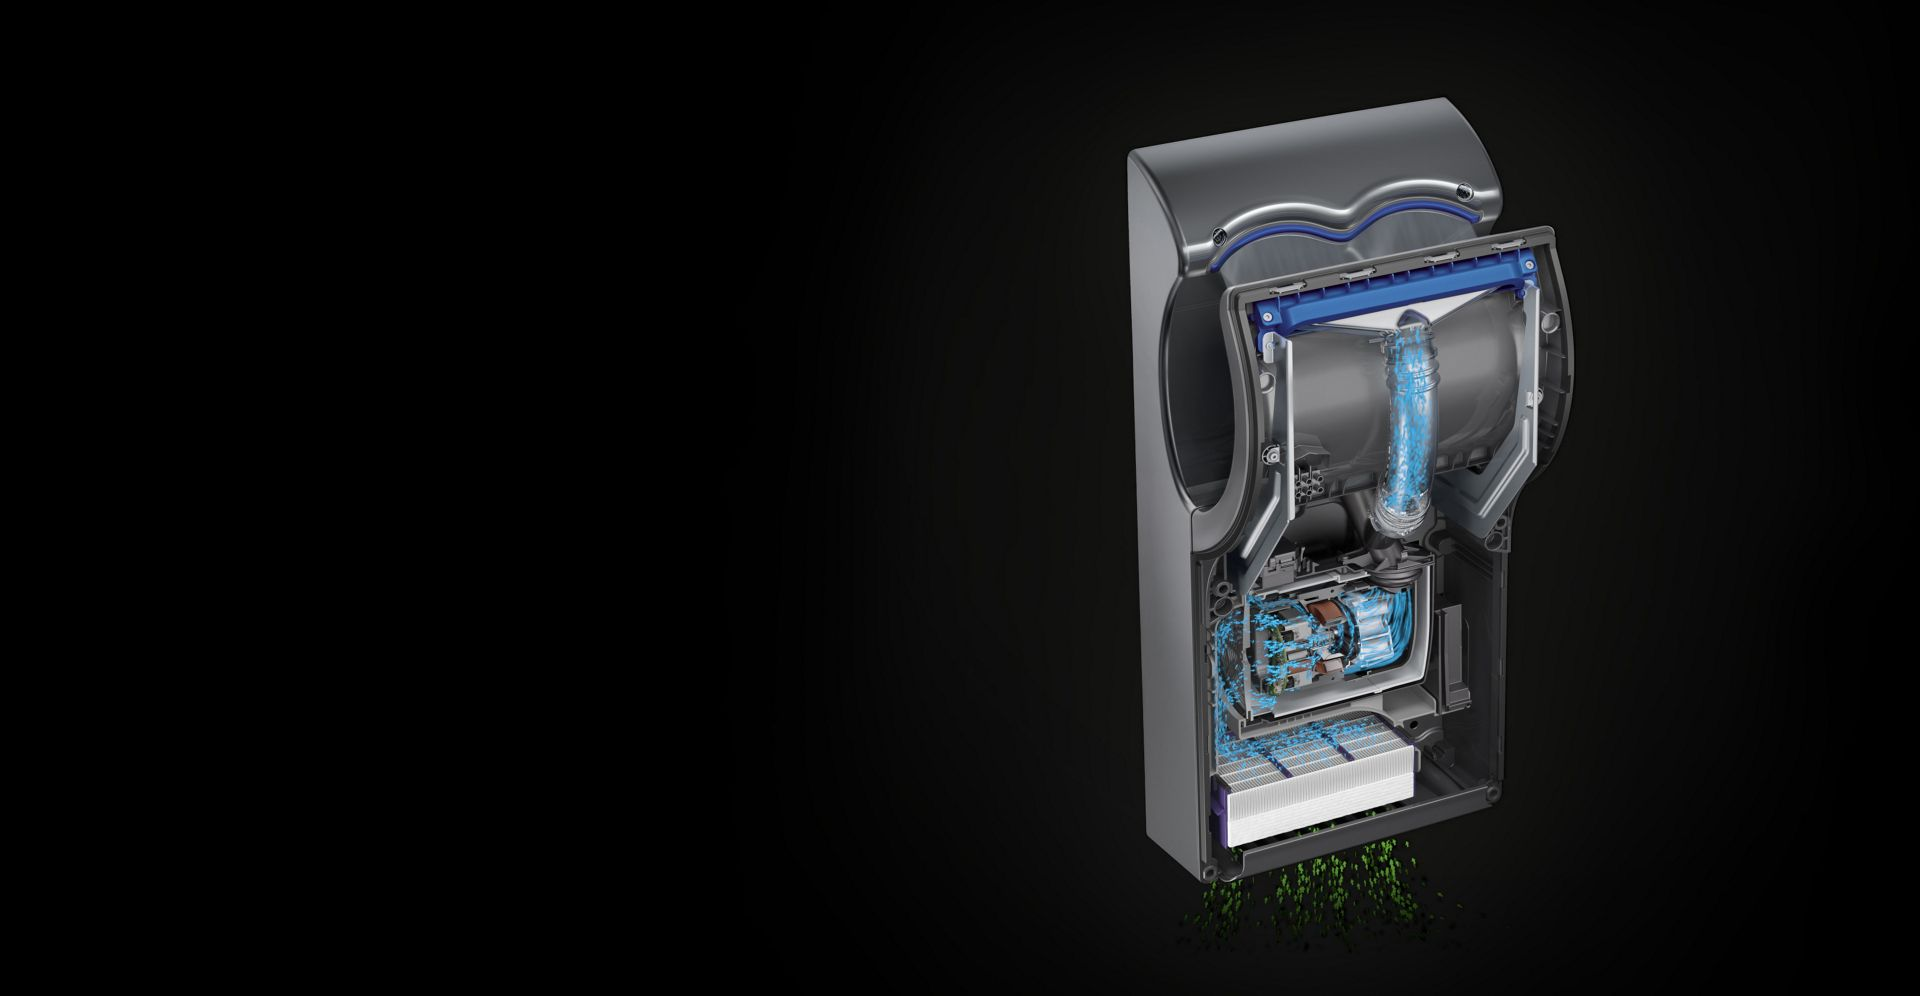 Detailed image of Dyson Airblade dB technology